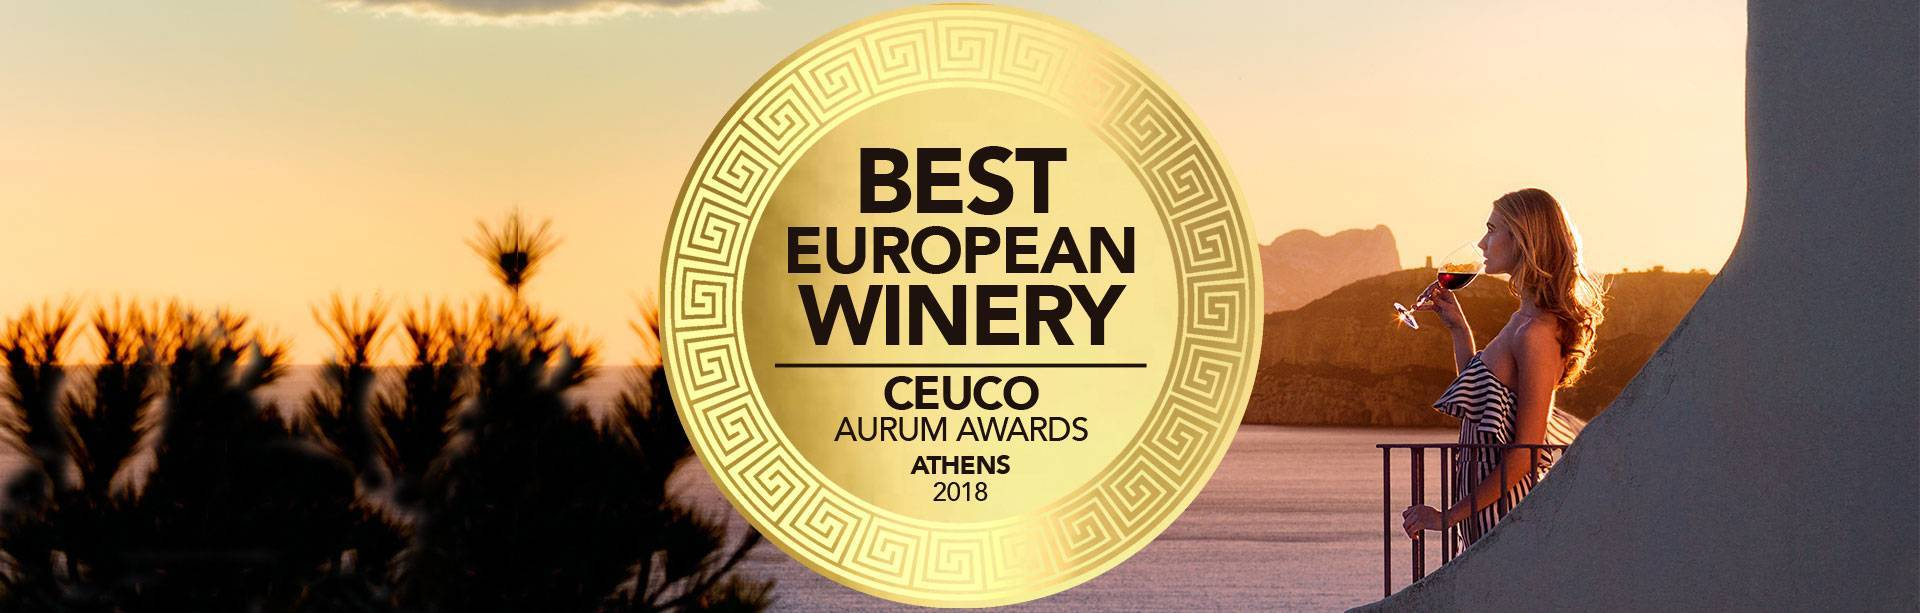 Banner-Best-European-Winery